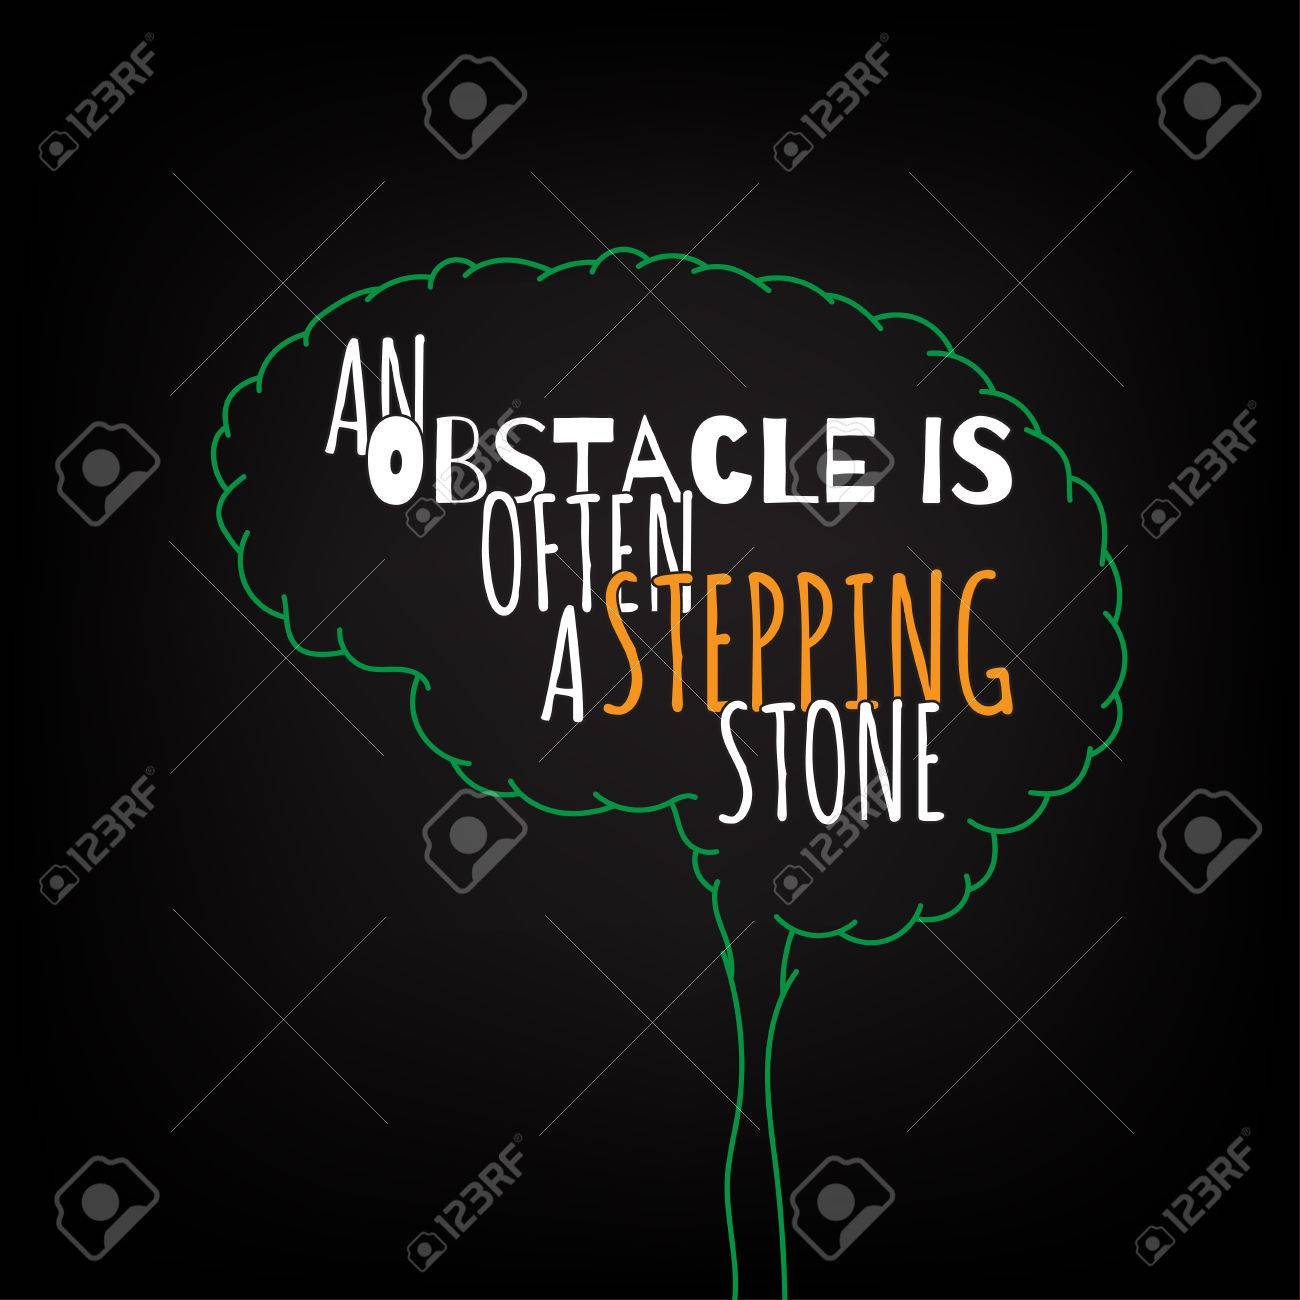 An Obstacle Is Often A Stepping Stone Motivation Clever Ideas